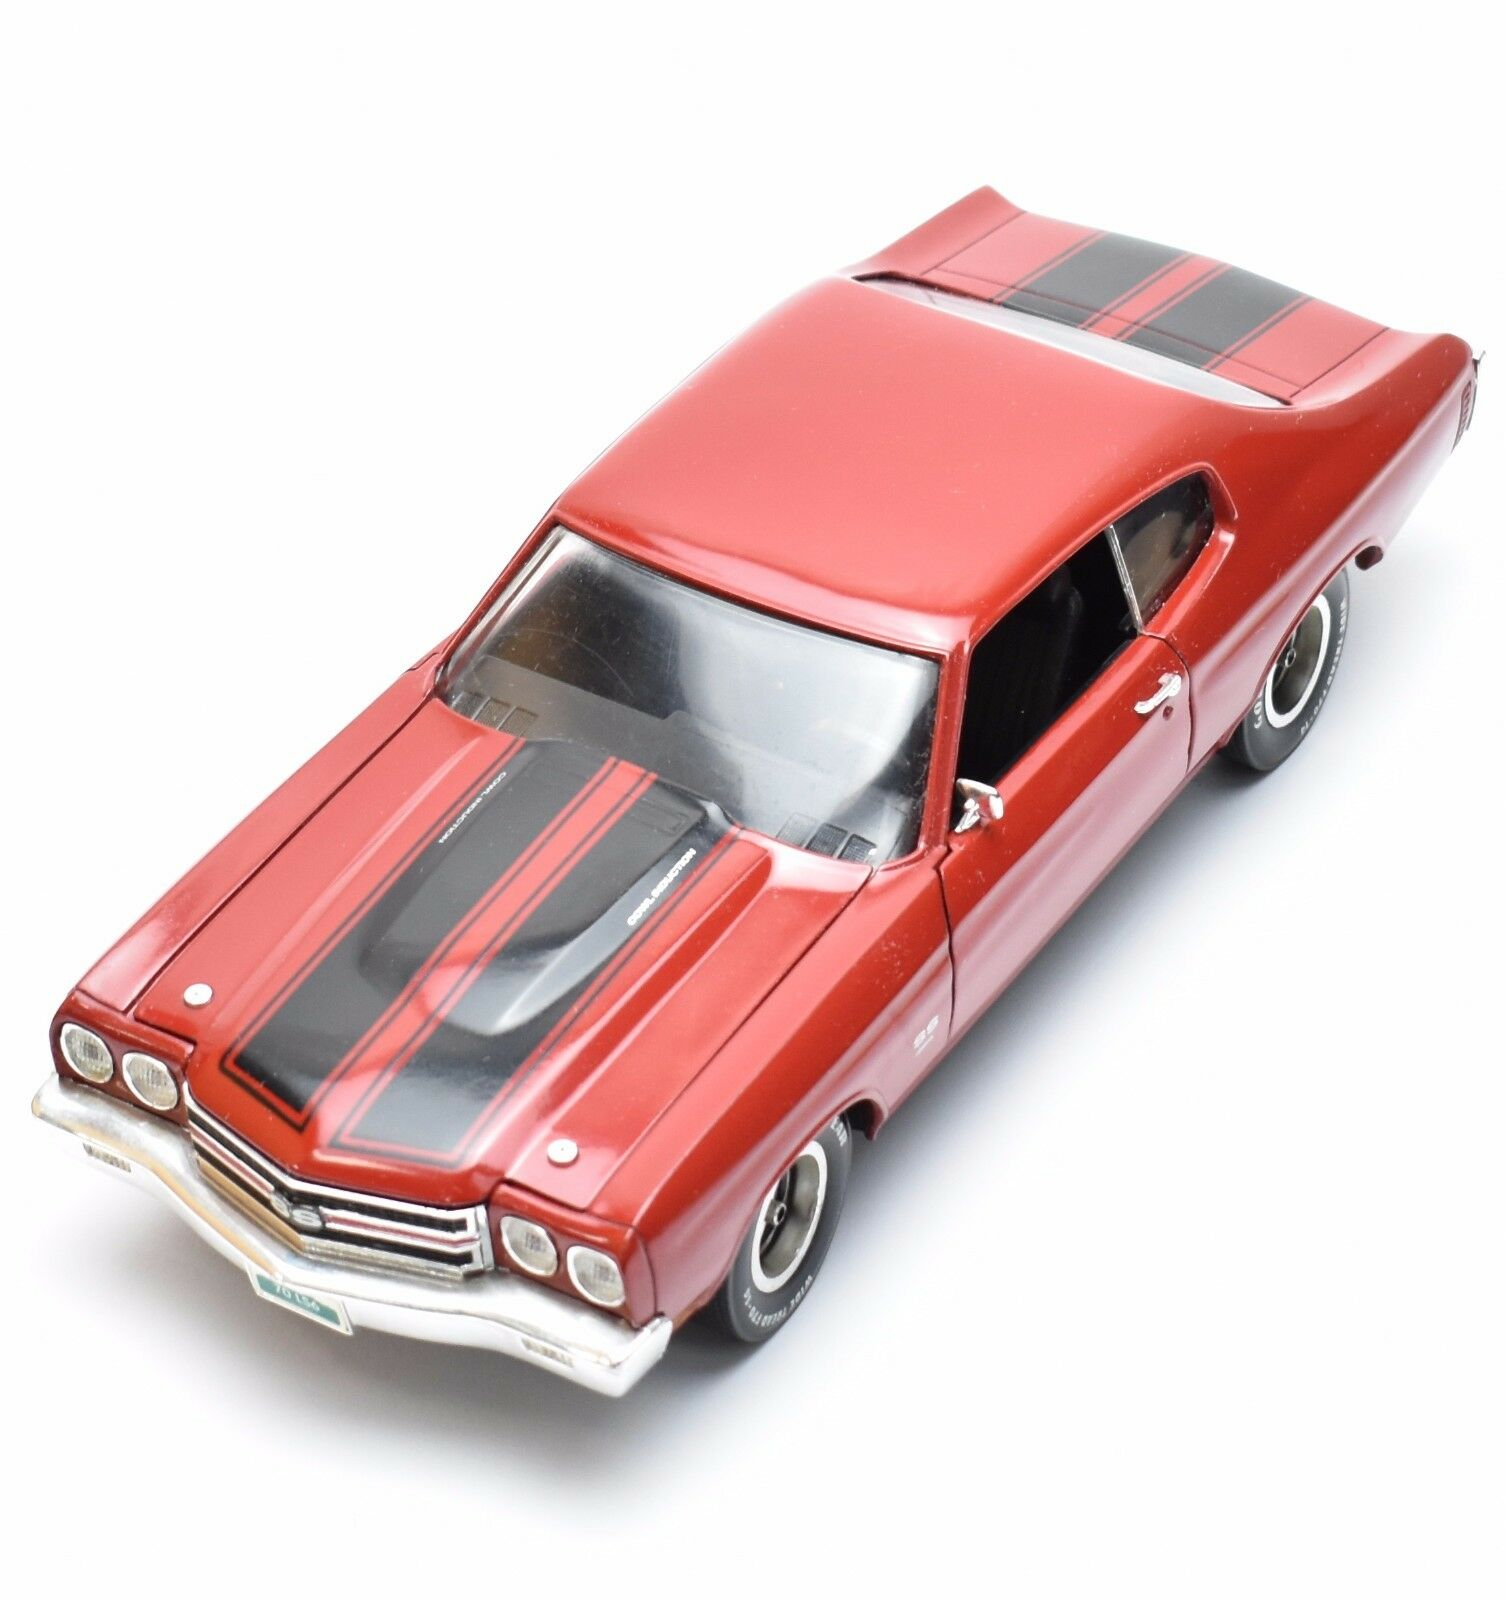 ERTL 7486 Chevelle SS 454 ls6 SPORT COUPE 1970 in rosso laccato, OVP, 1 18, k014